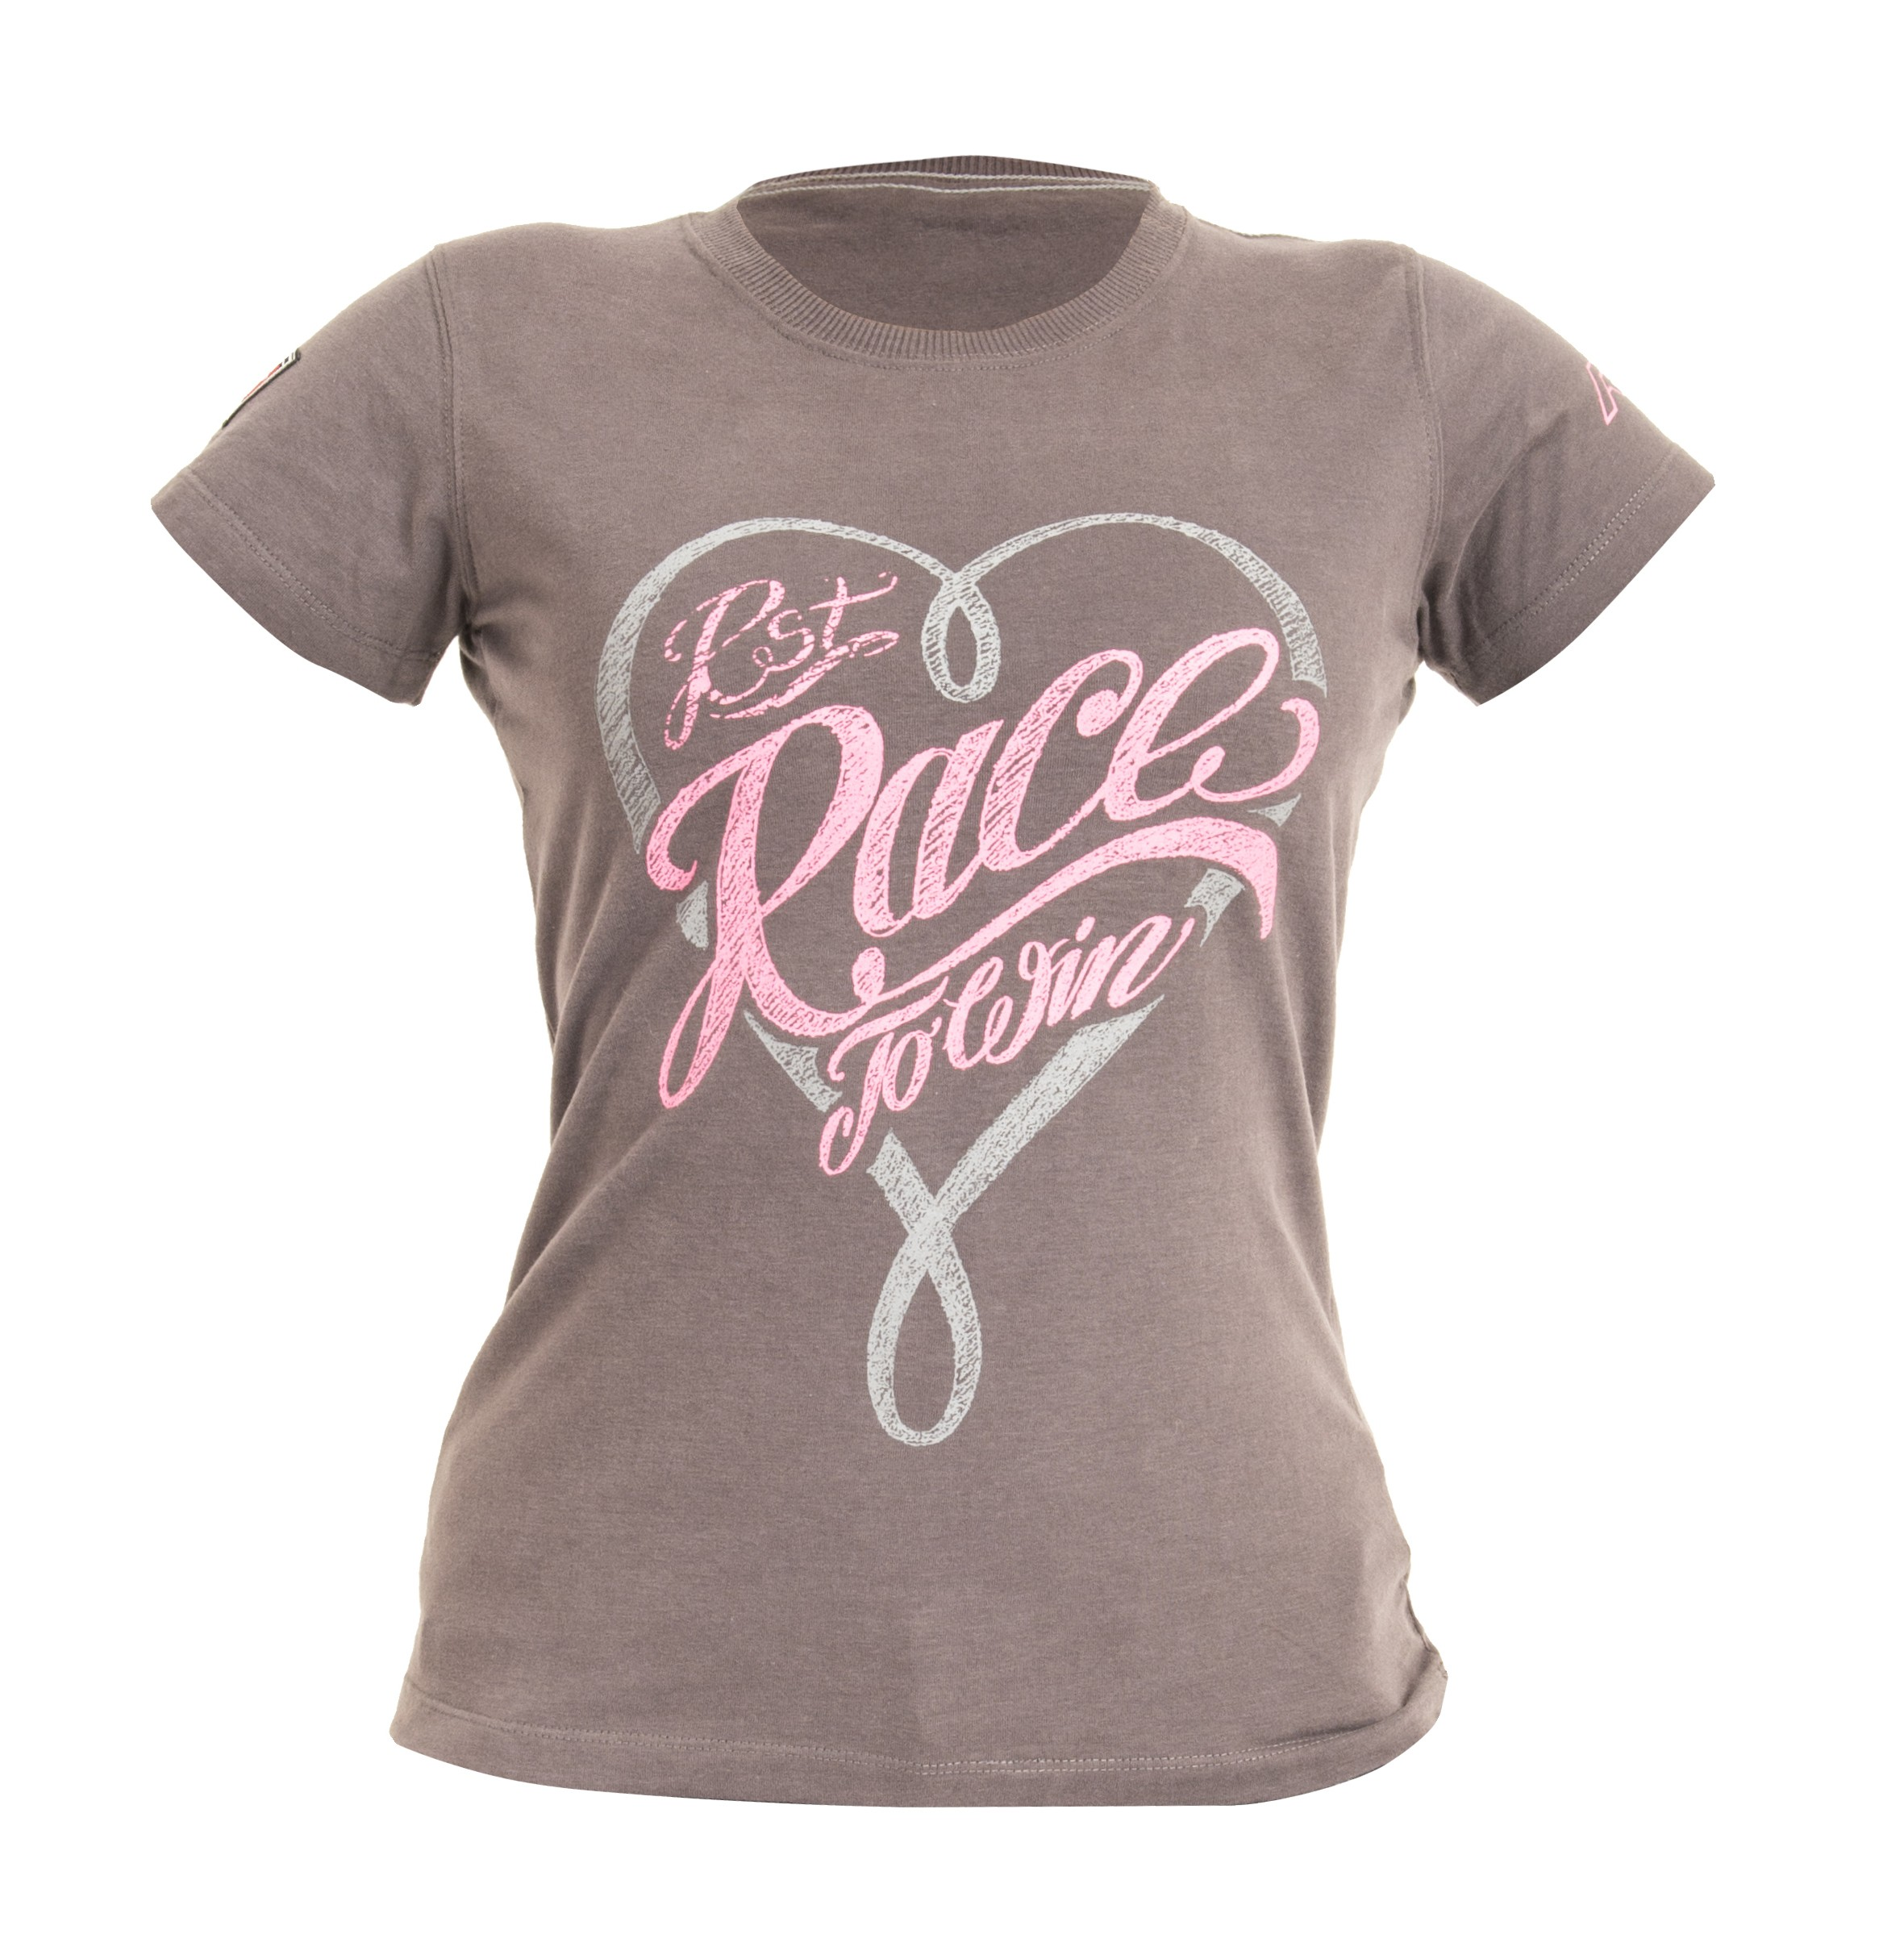 RST ladies casual t shirt